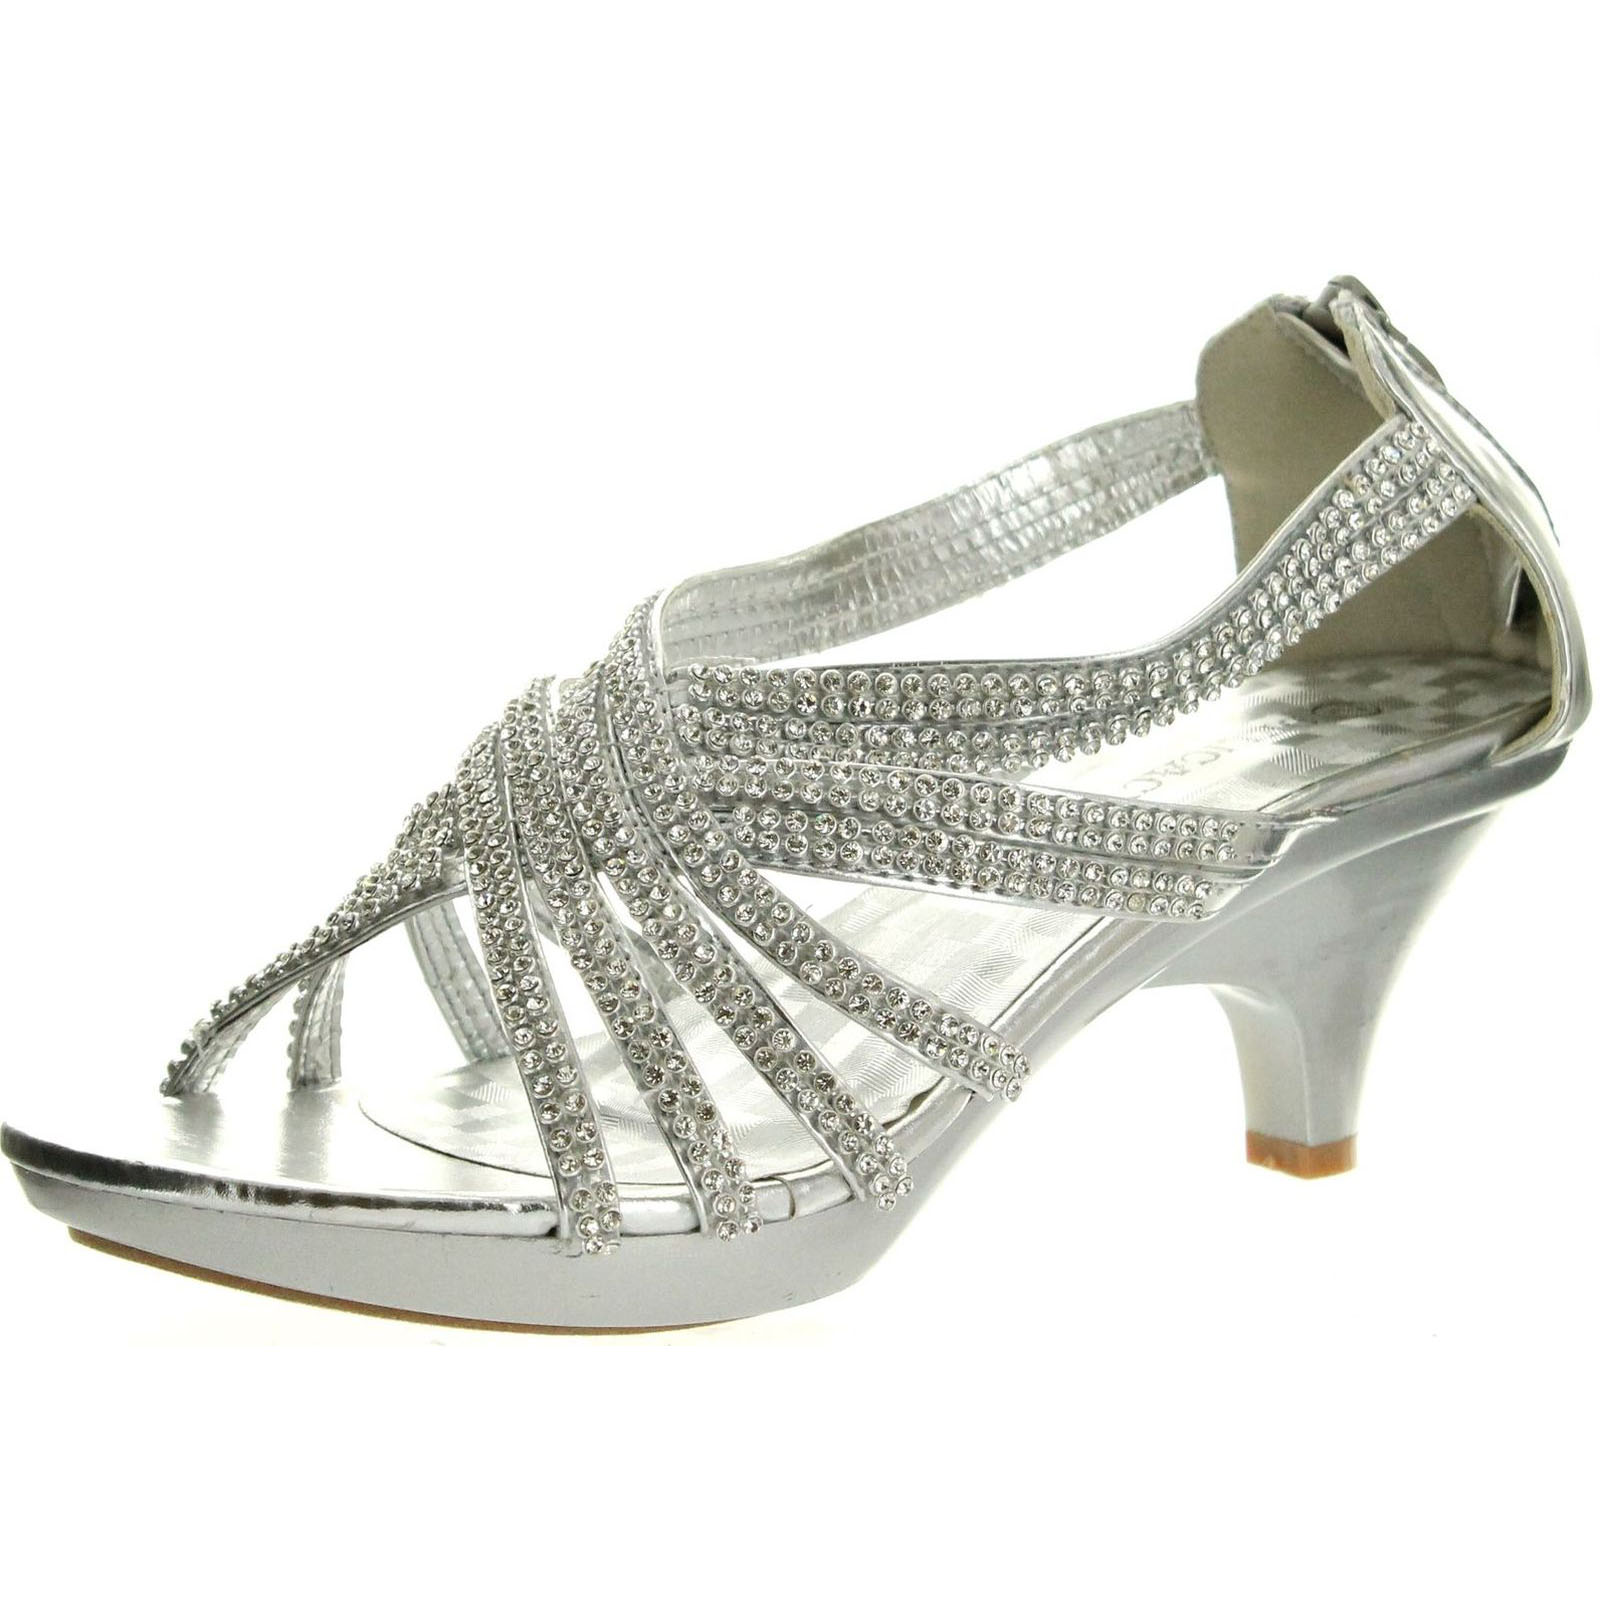 Delicacy Womens Angel-41 Rhinestones Embellished Strappy Sandals